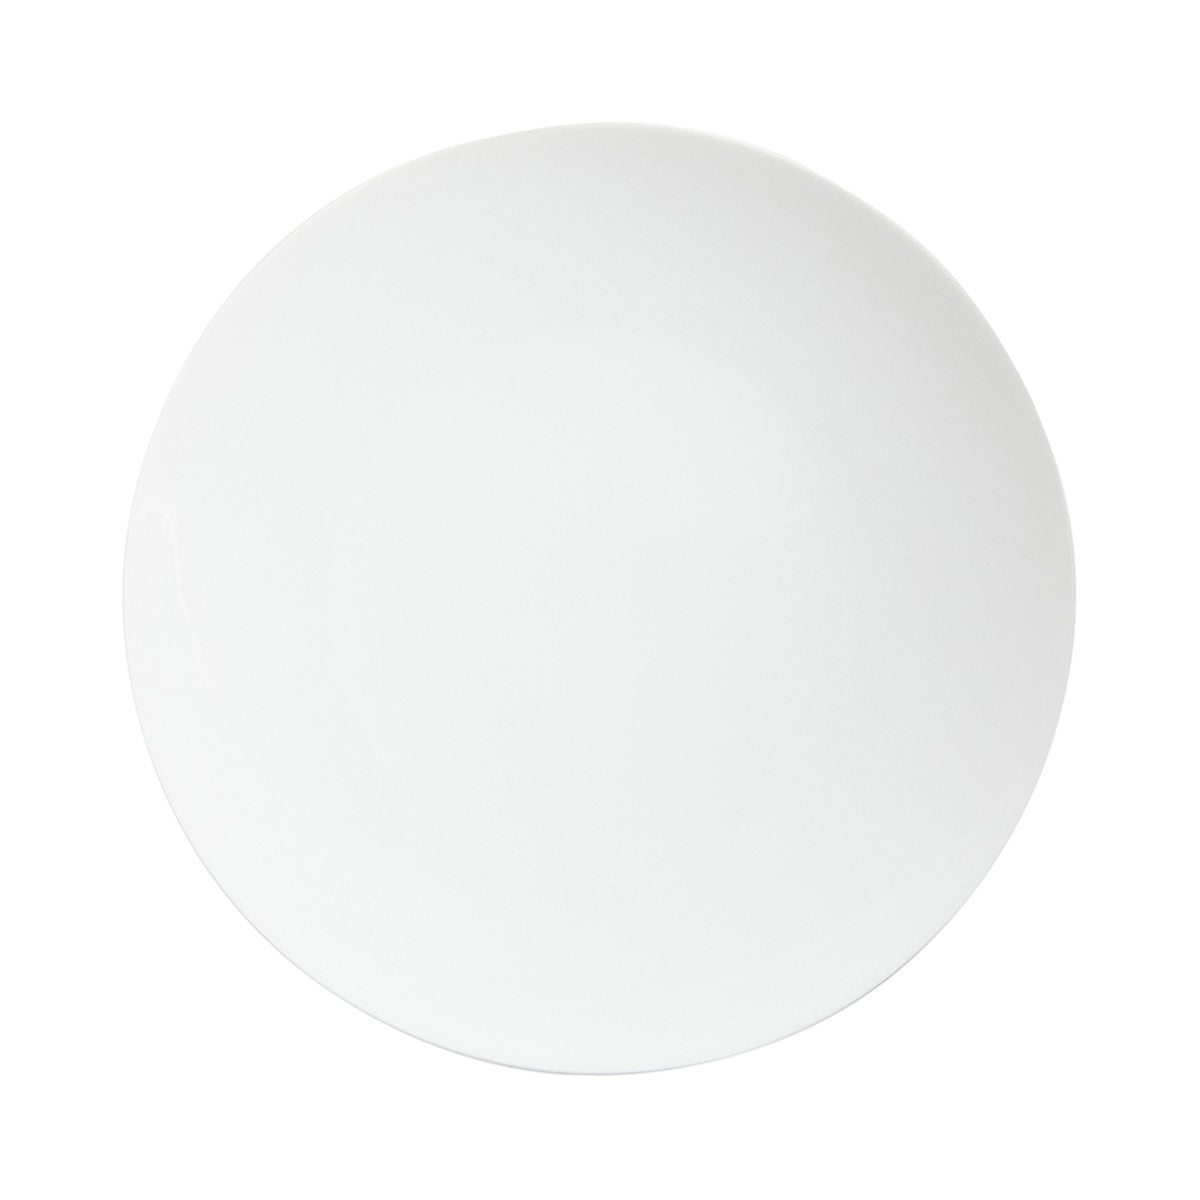 Tac 02 White Porcelain Dinner Plate